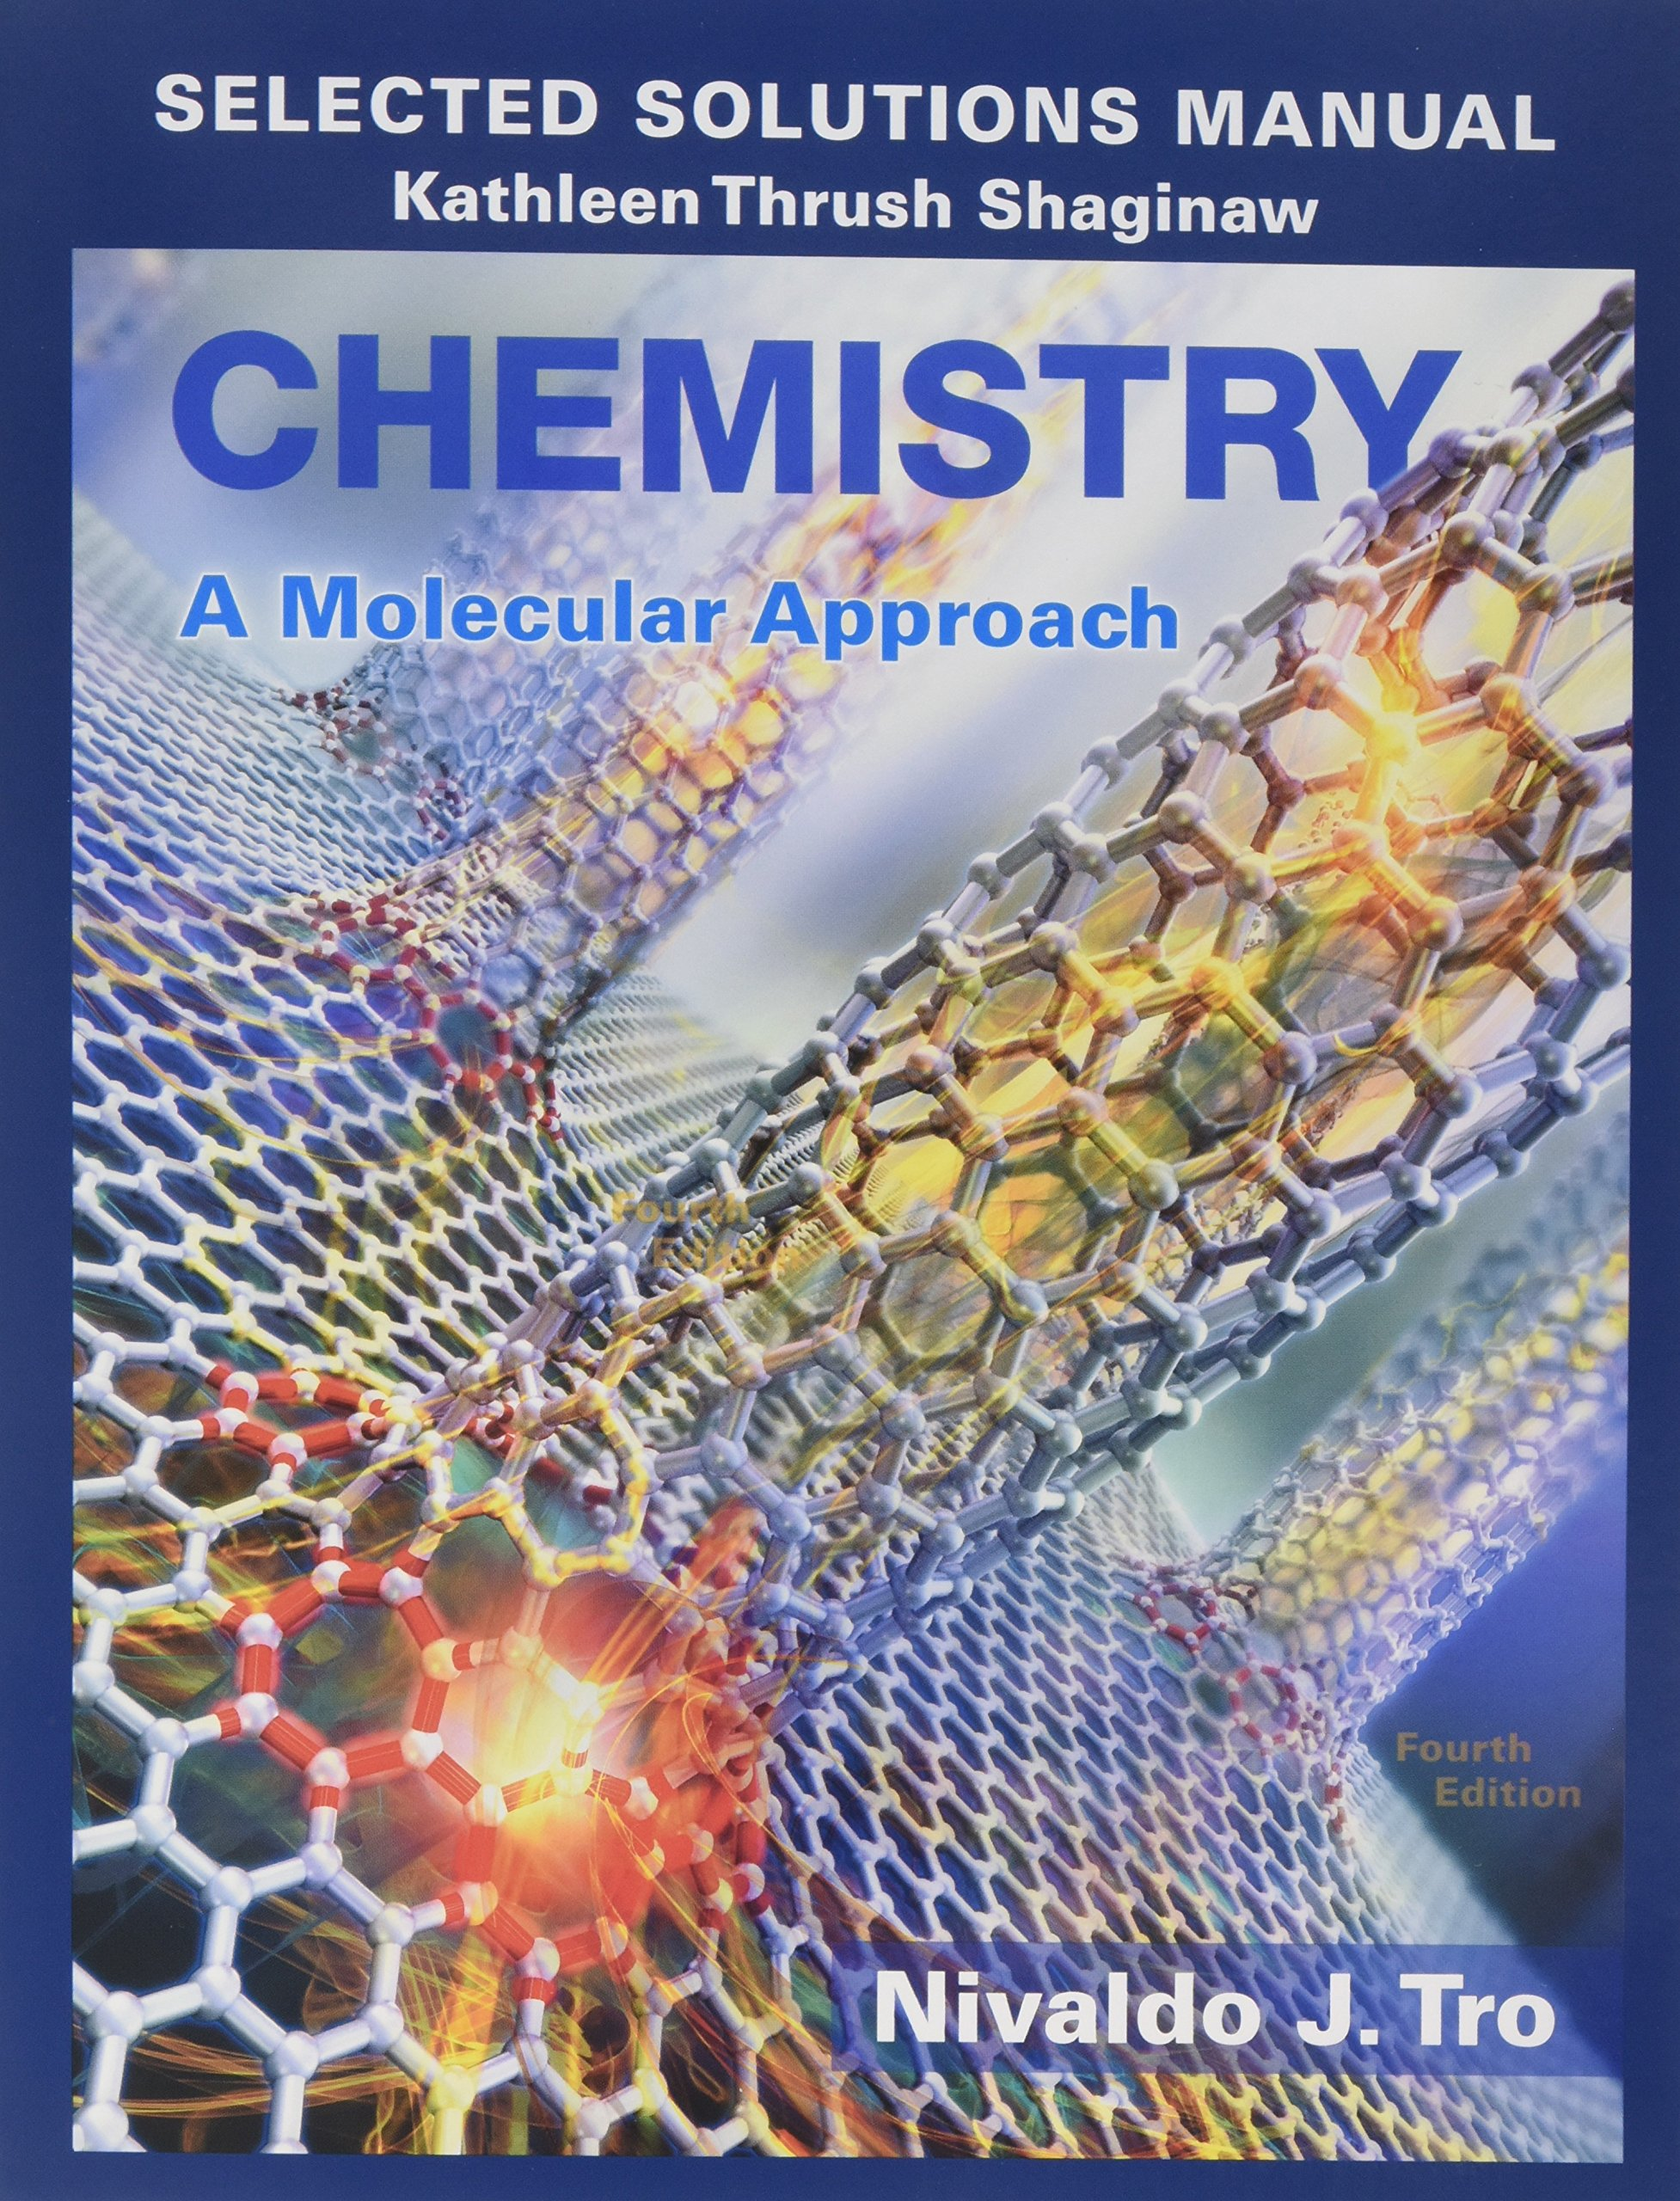 Selected Solutions Manual for Chemistry: A Molecular Approach:  Amazon.co.uk: Nivaldo J. Tro: 9780134066288: Books